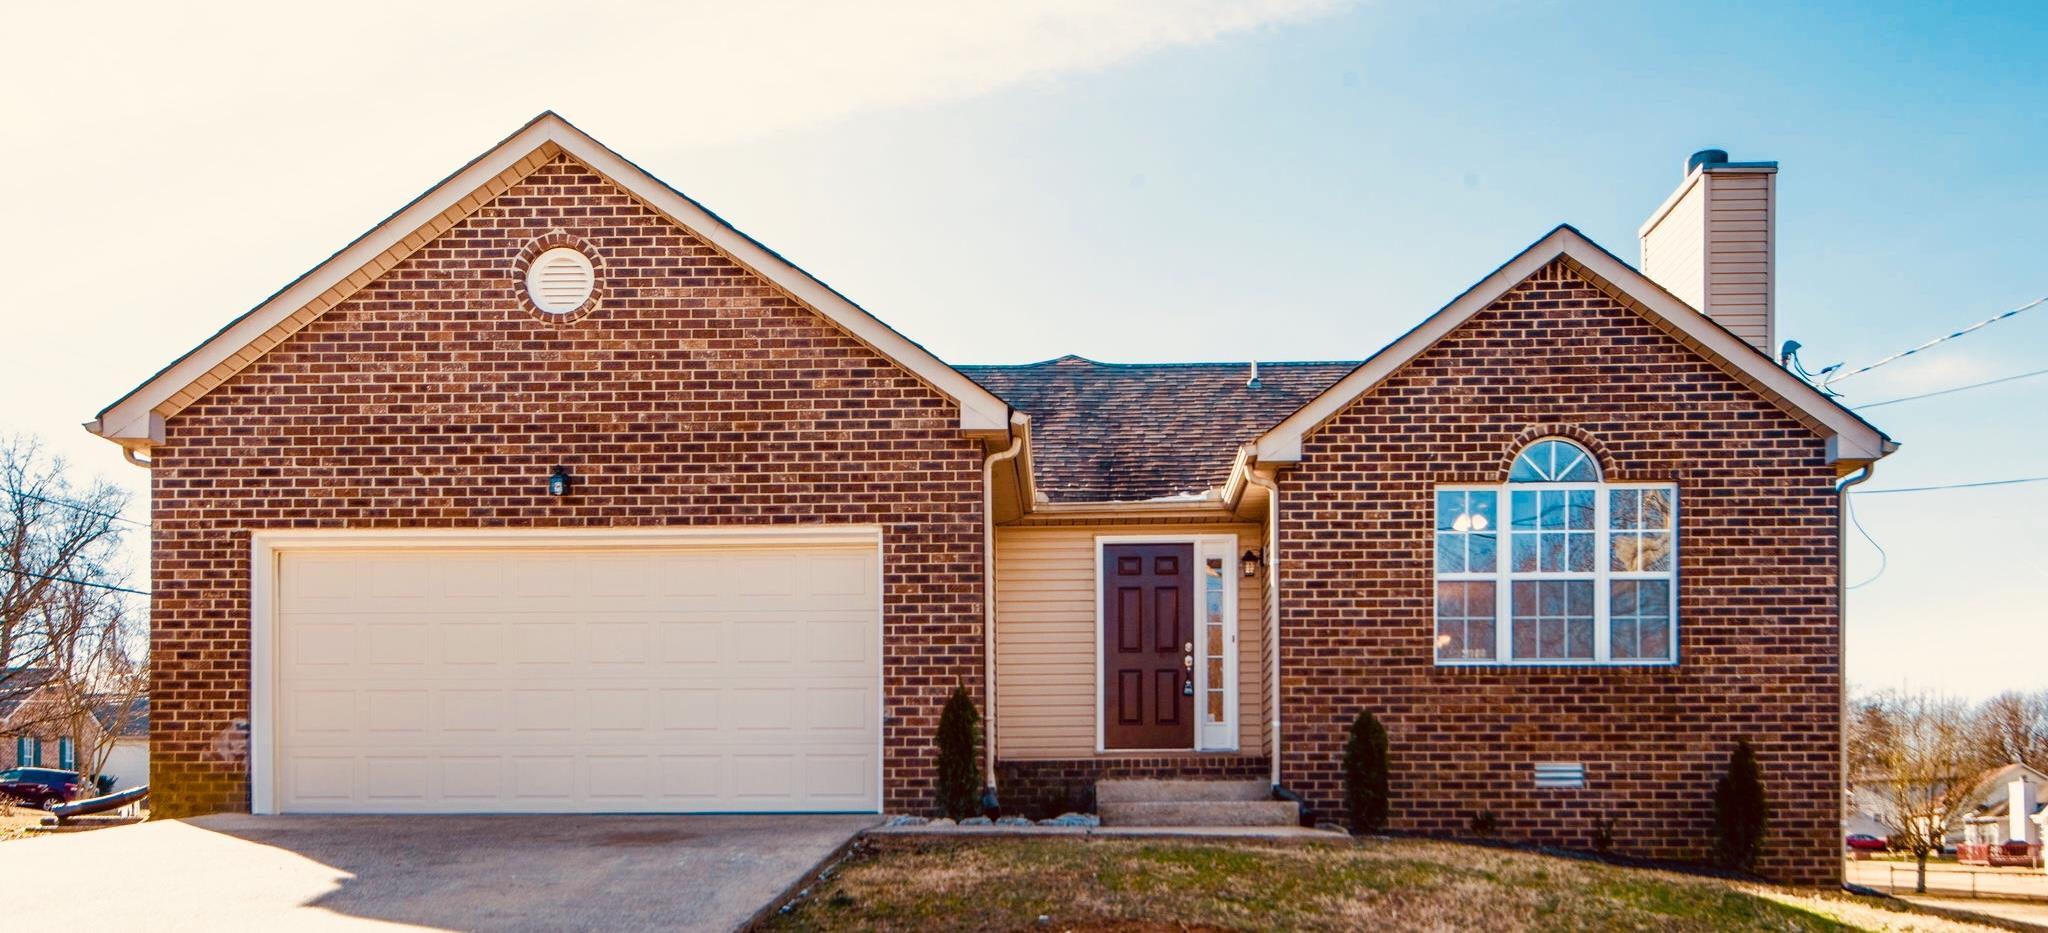 3532 Lake Towne Dr, Nashville-Antioch in Davidson County County, TN 37013 Home for Sale